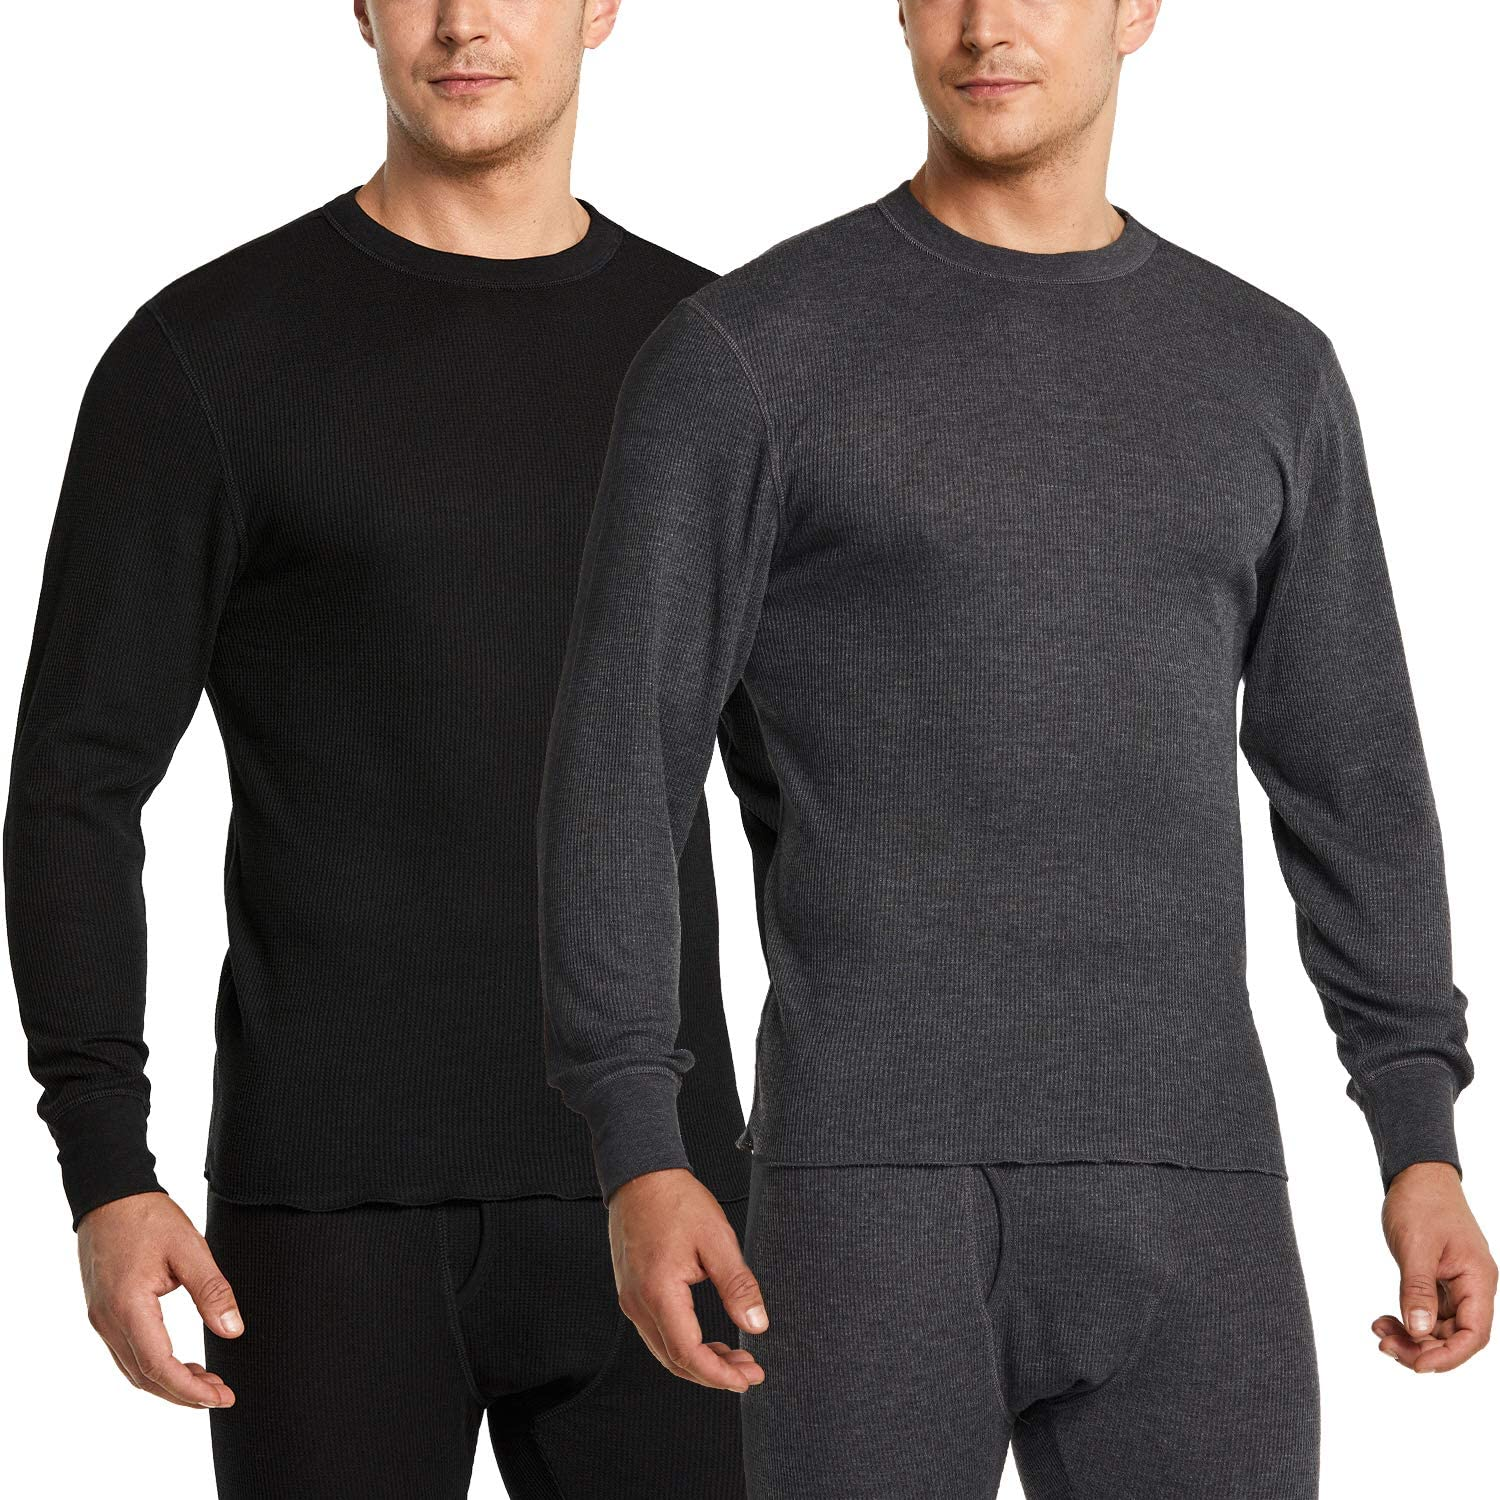 CQR 1 or 2 Pack Men's Long Sleeve Thermal Underwear Tops, Midweight Waffle Crewneck Shirt, Winter Cold Weather Thermal Shirts